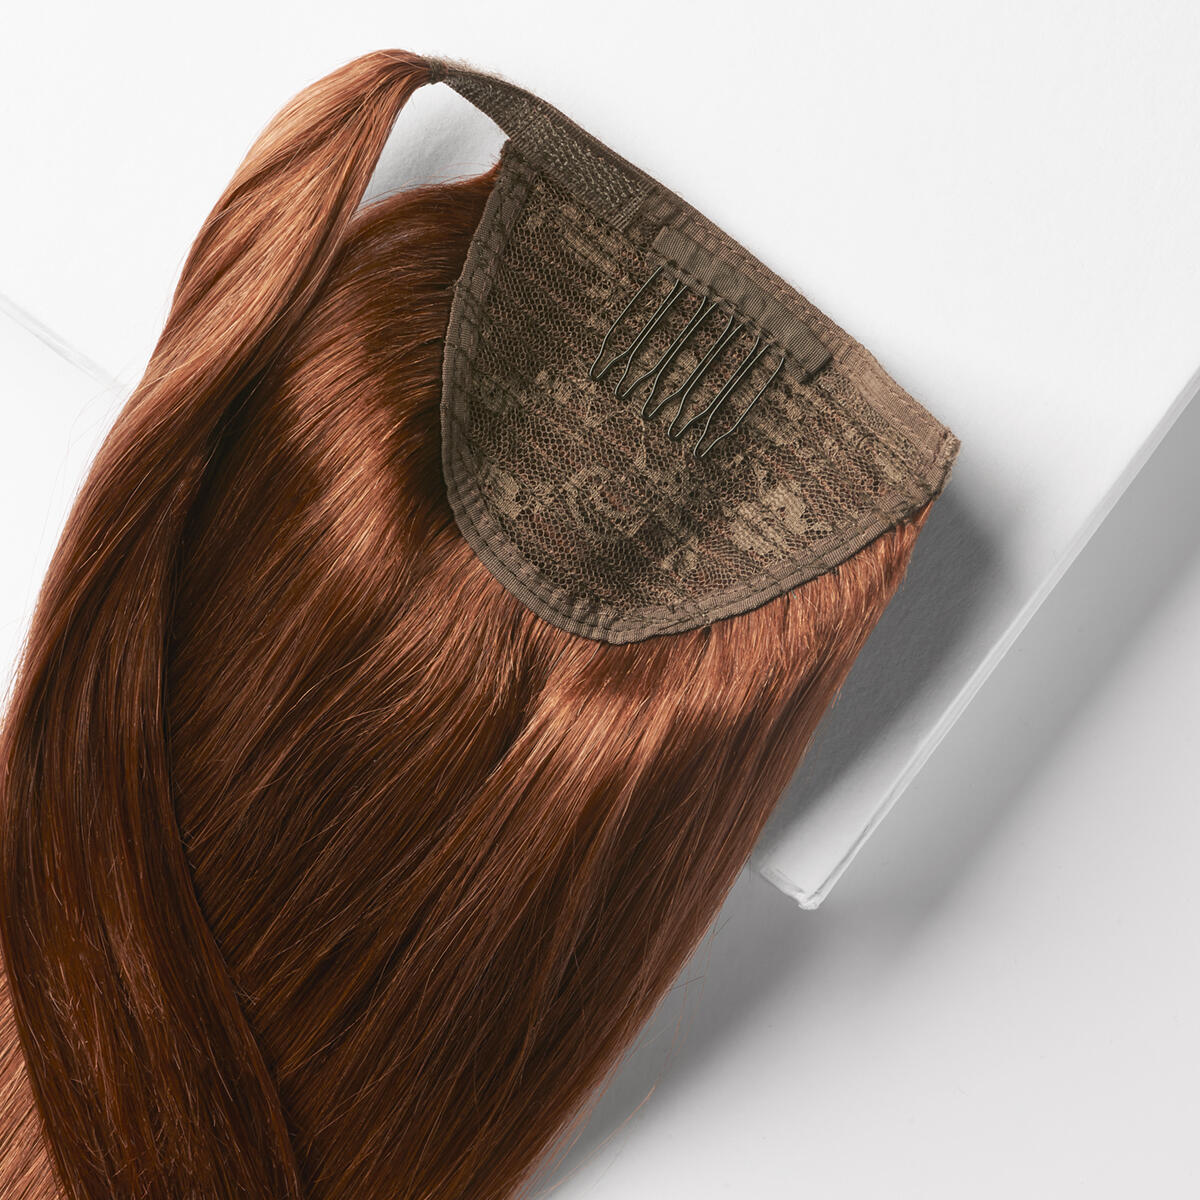 Clip-in Ponytail Ponytail made of real hair 5.5 Mahogany Brown 50 cm